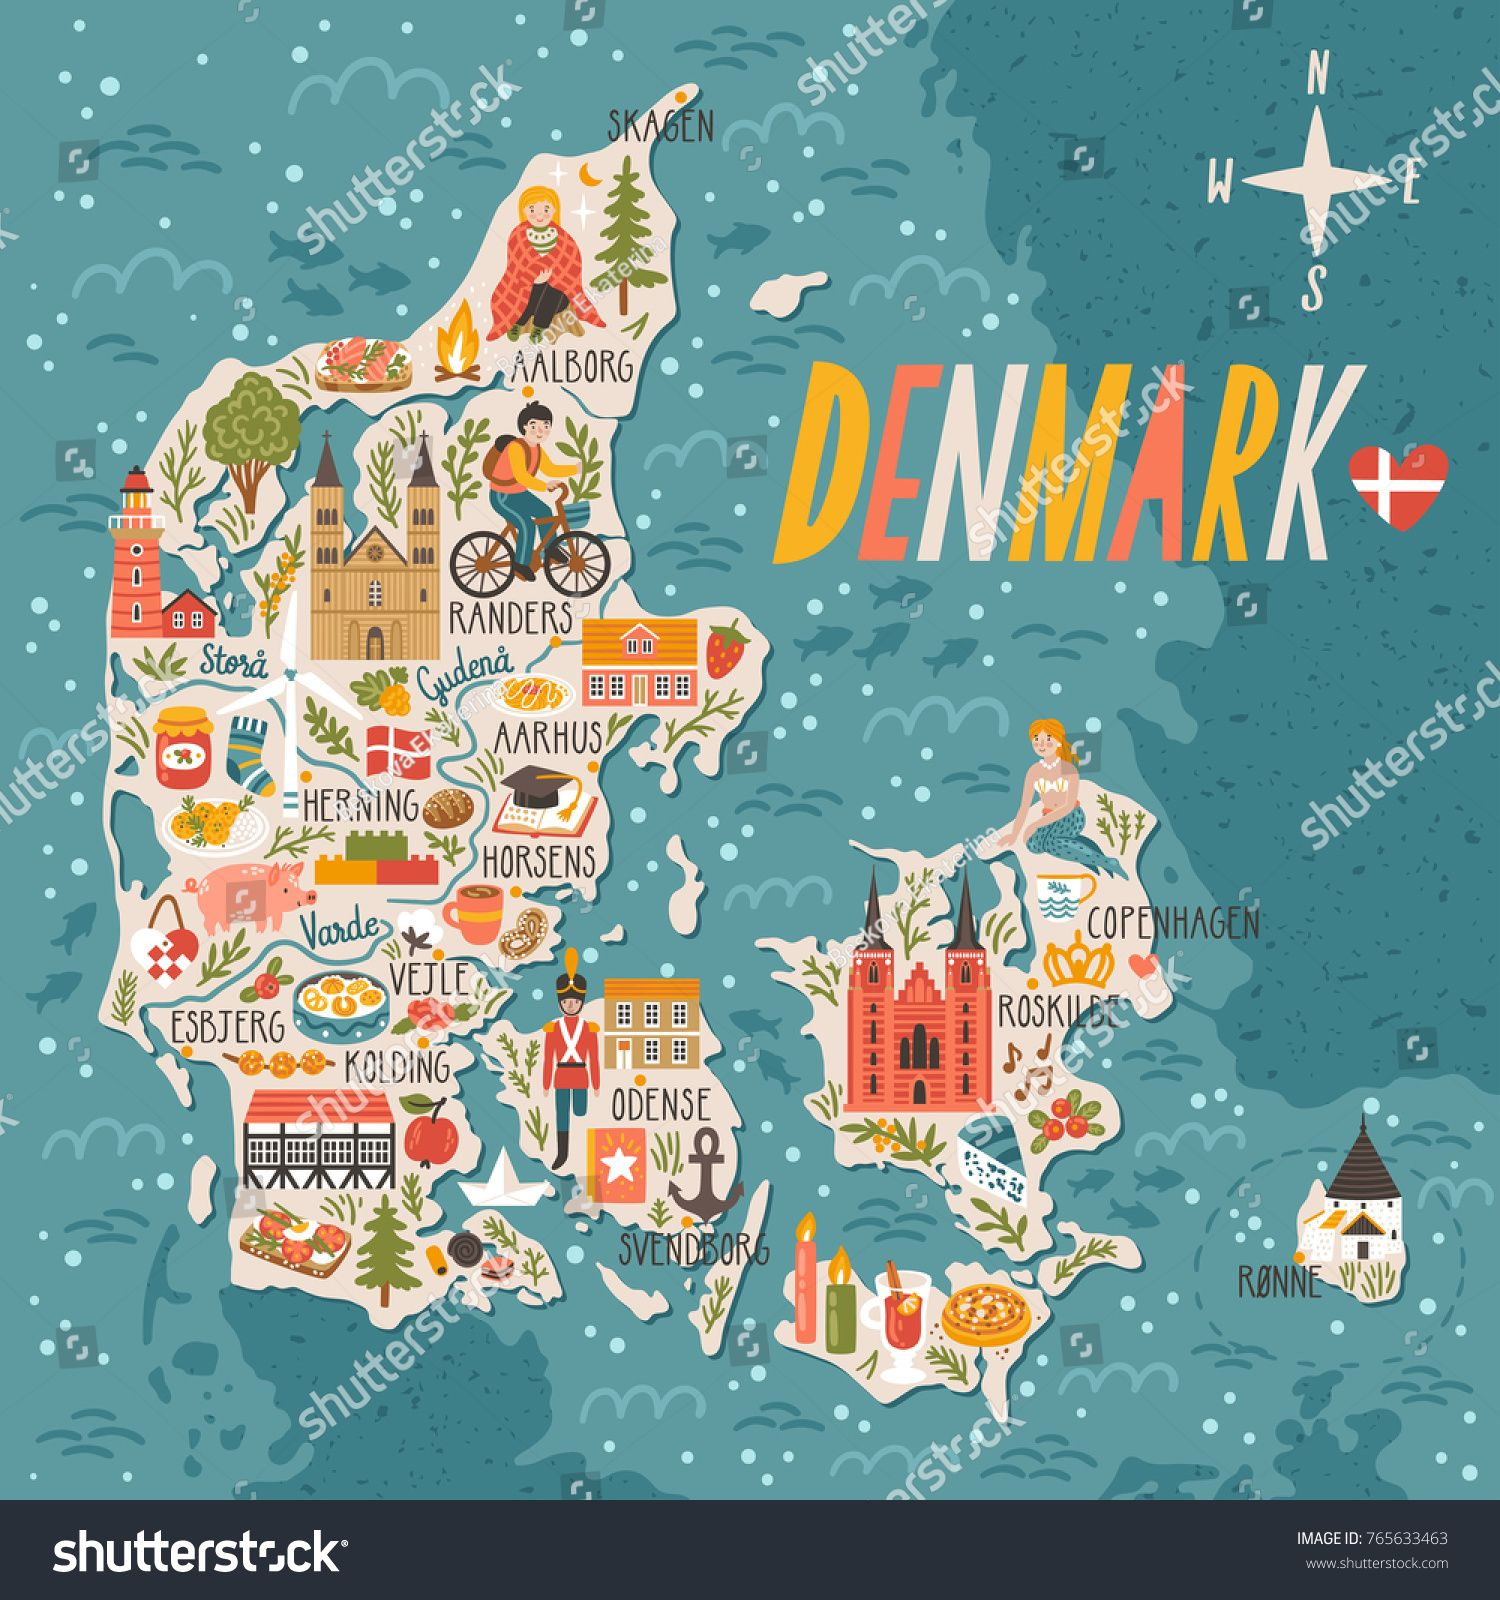 Vector stylized map of Denmark Travel illustration with danish